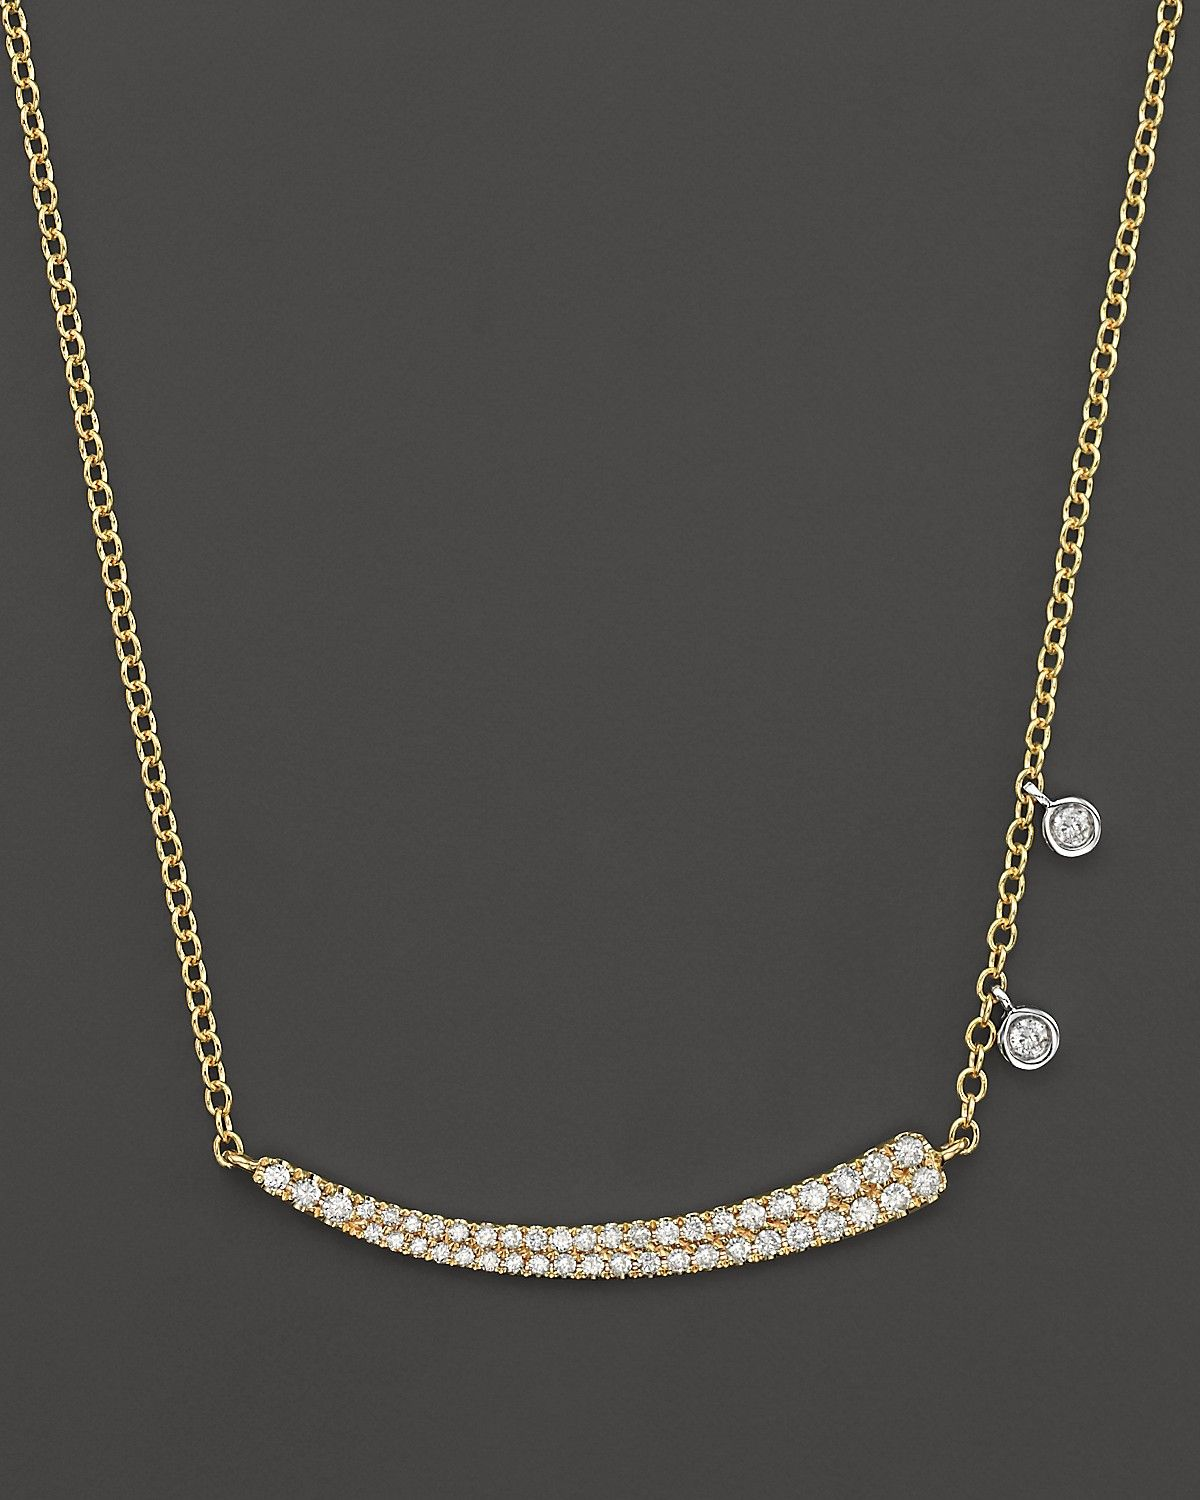 Meira T 14k Yellow Gold Pave Diamond Curved Bar Necklace With 14k White Gold Side Bezels 16 Meira T Bloomingdale S Curved Bar Necklace Bar Necklace White Gold